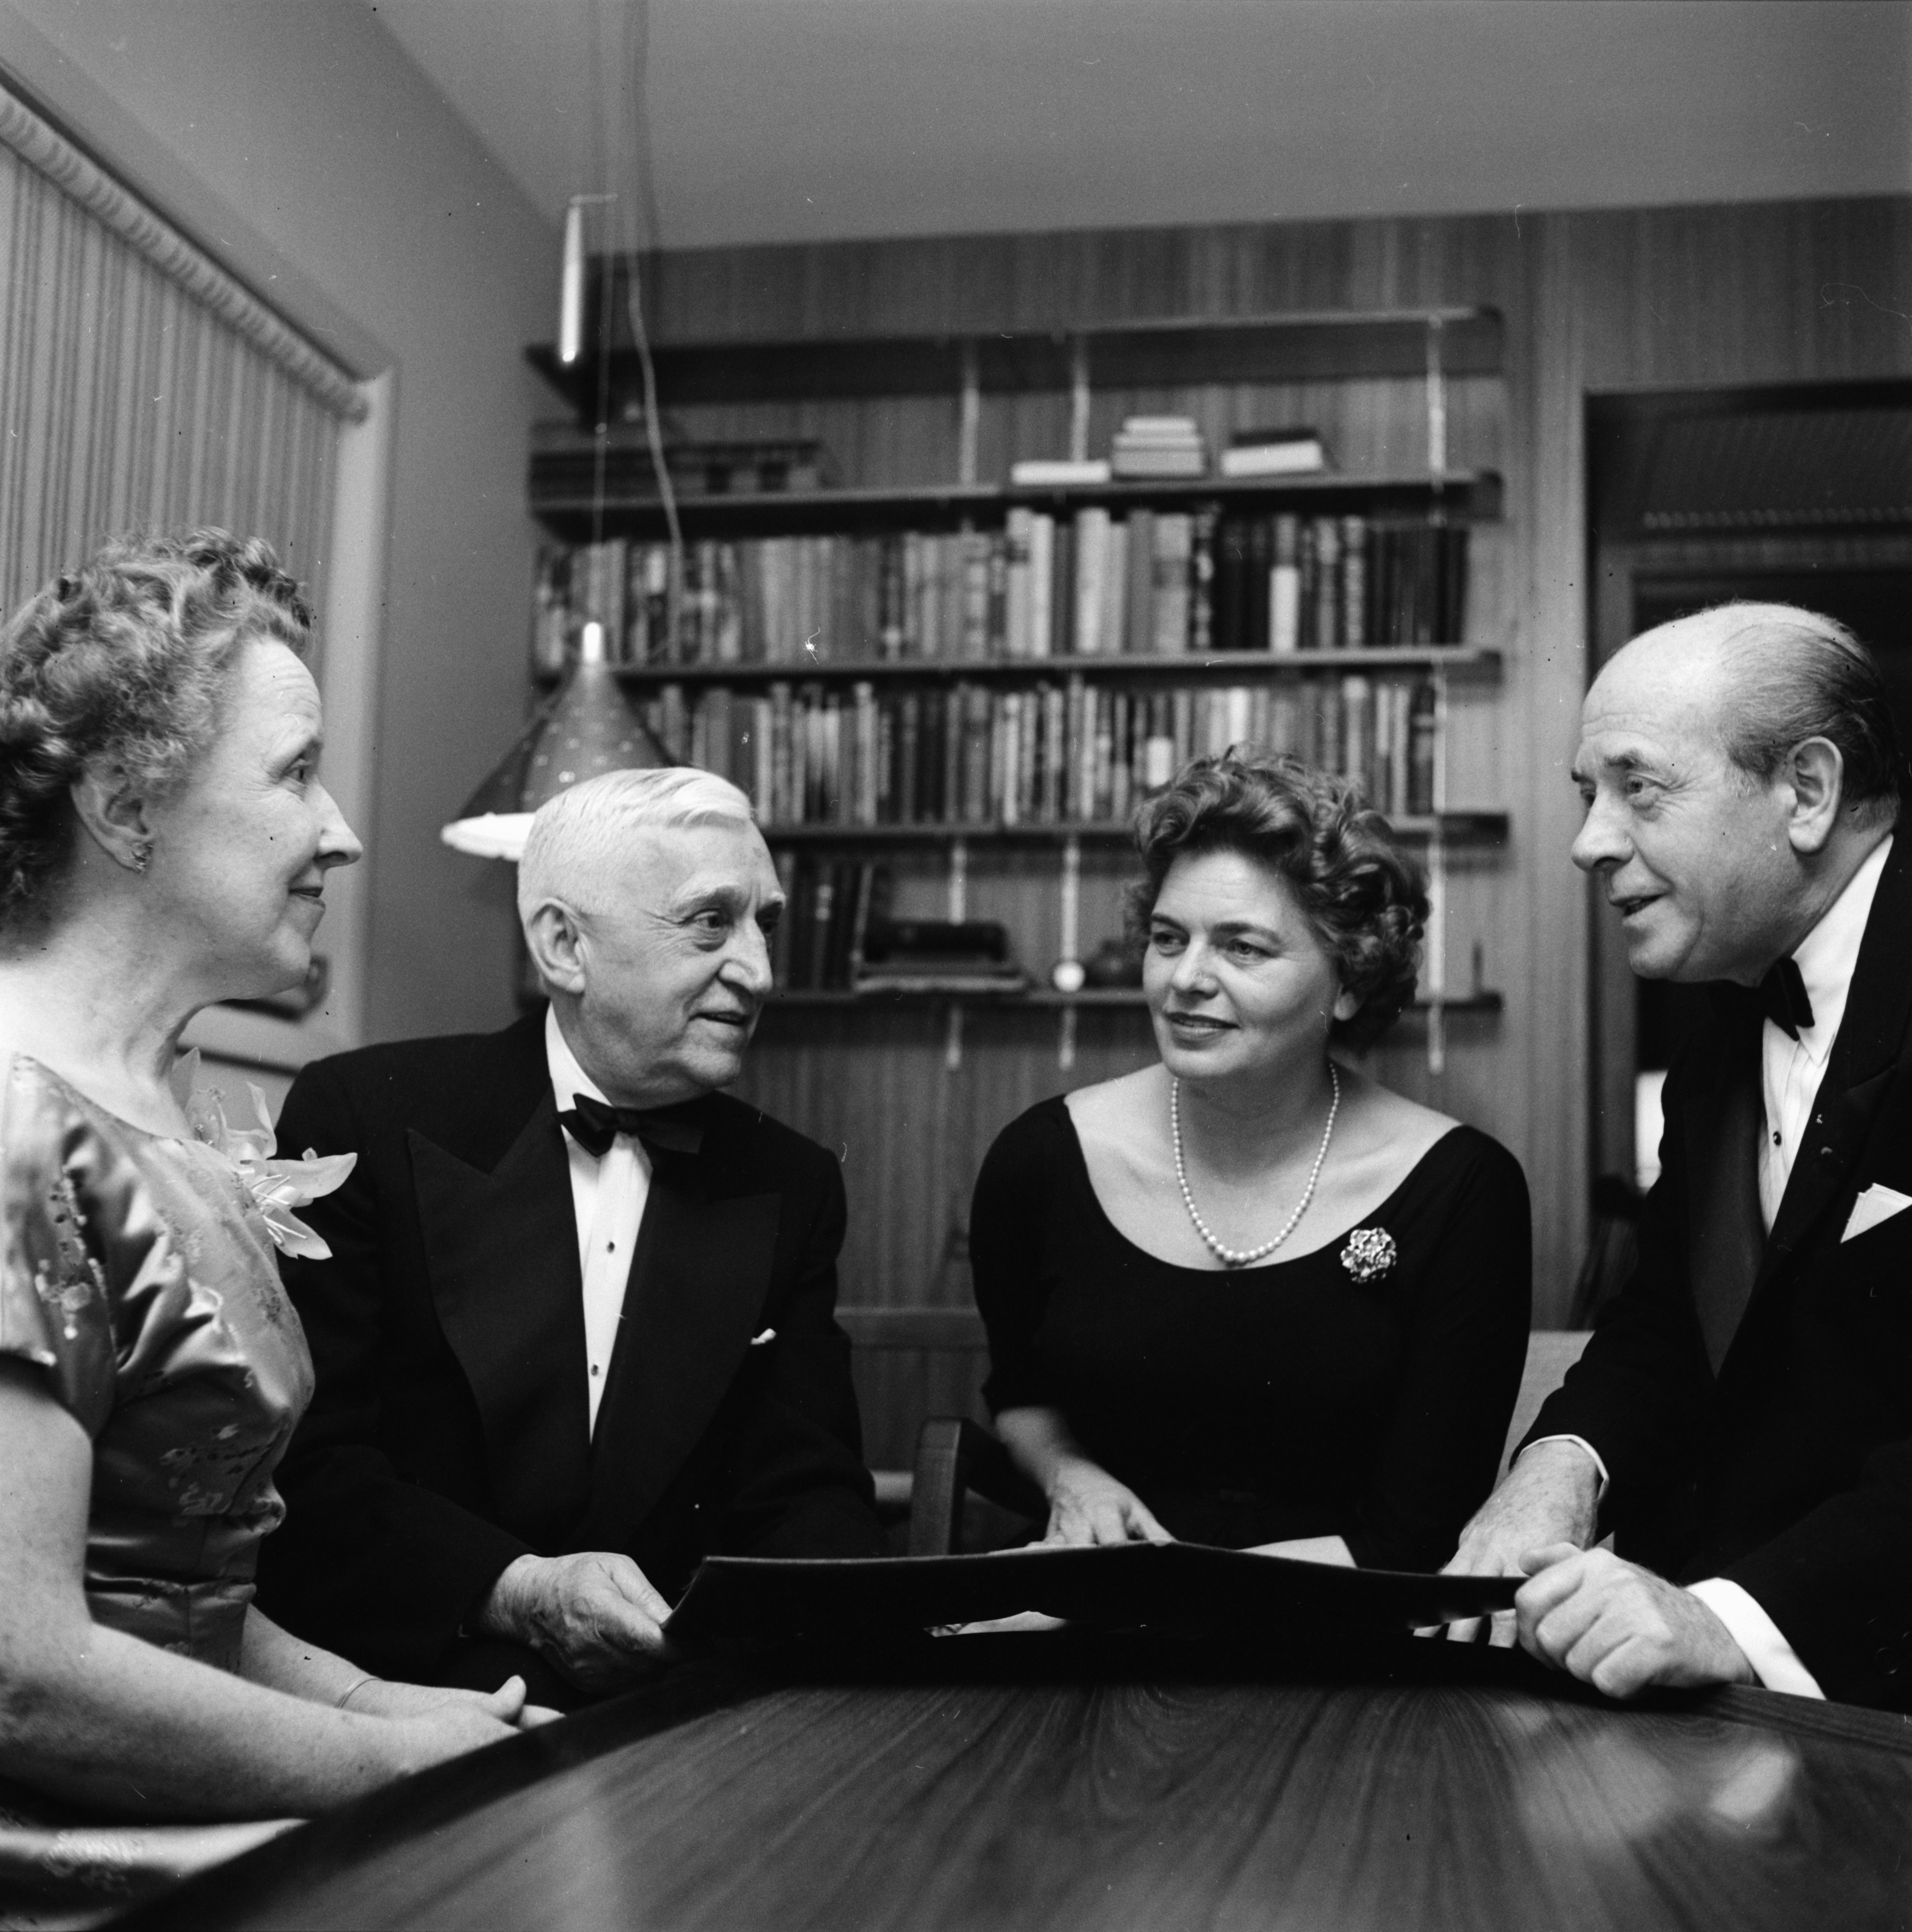 Charles and Alva Sink entertain Eugene Ormandy and wife Margaret, May 1957 image